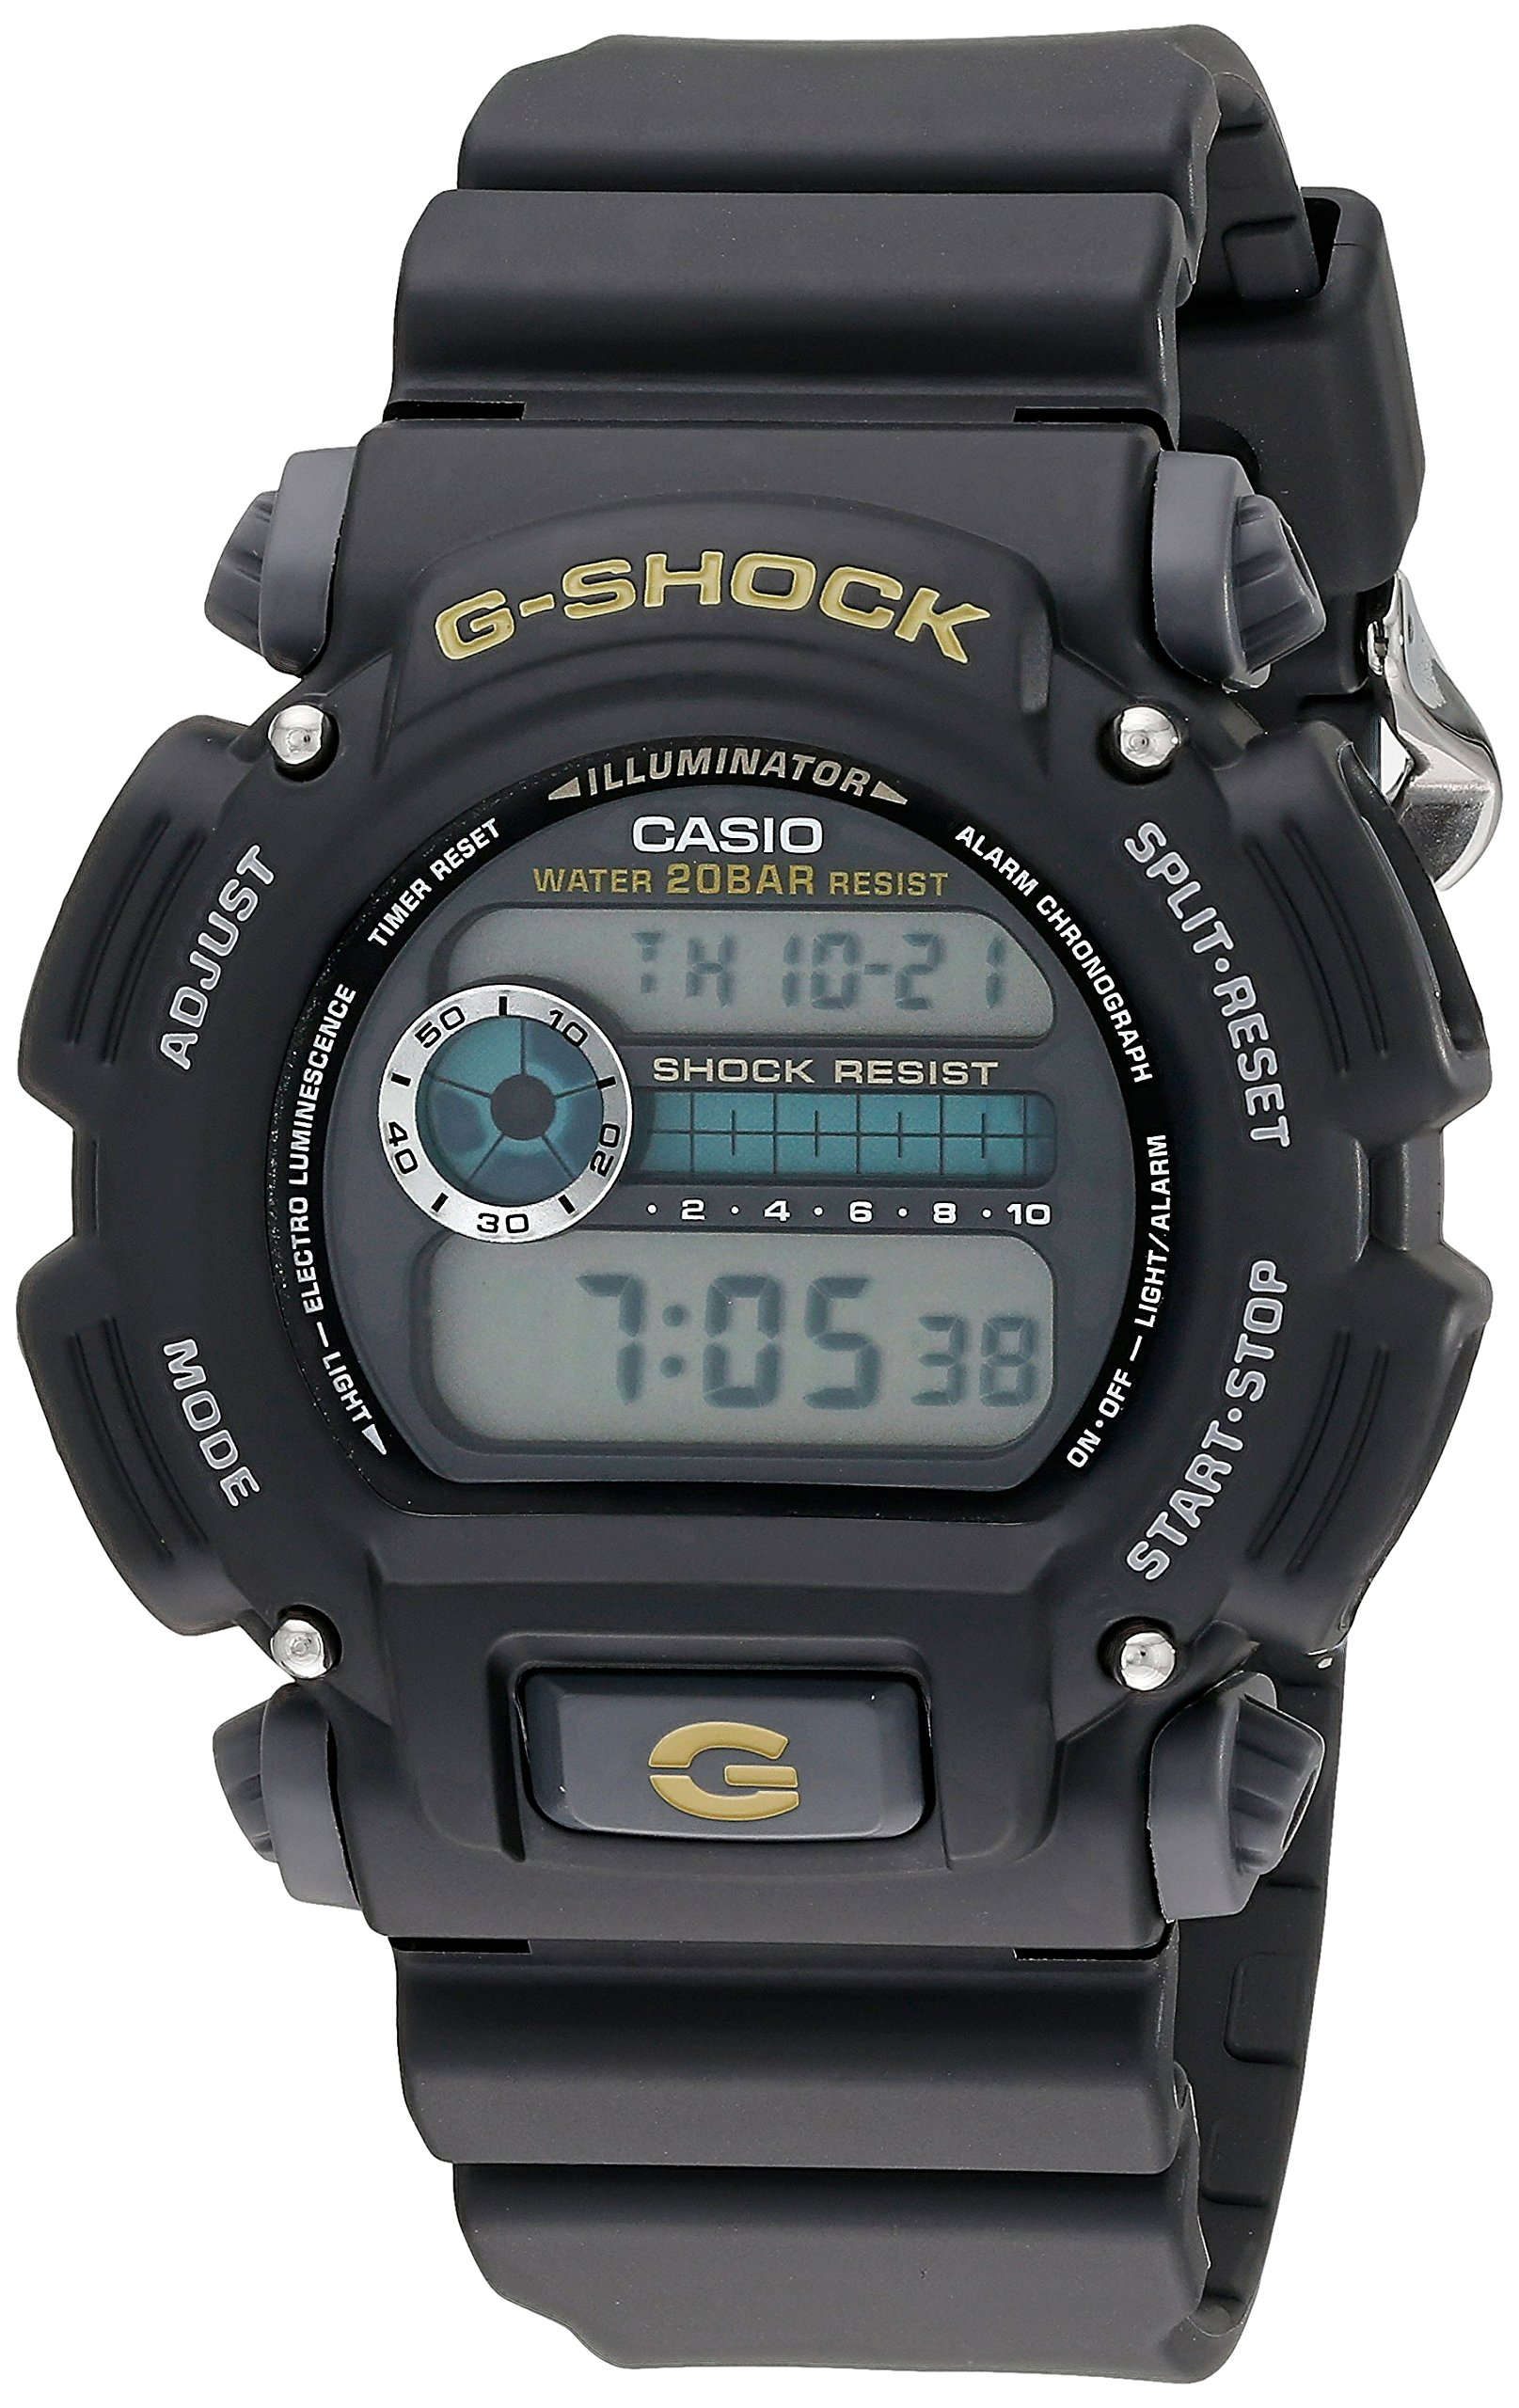 watches watch was of casio technology investments one this best my casiowatch simple